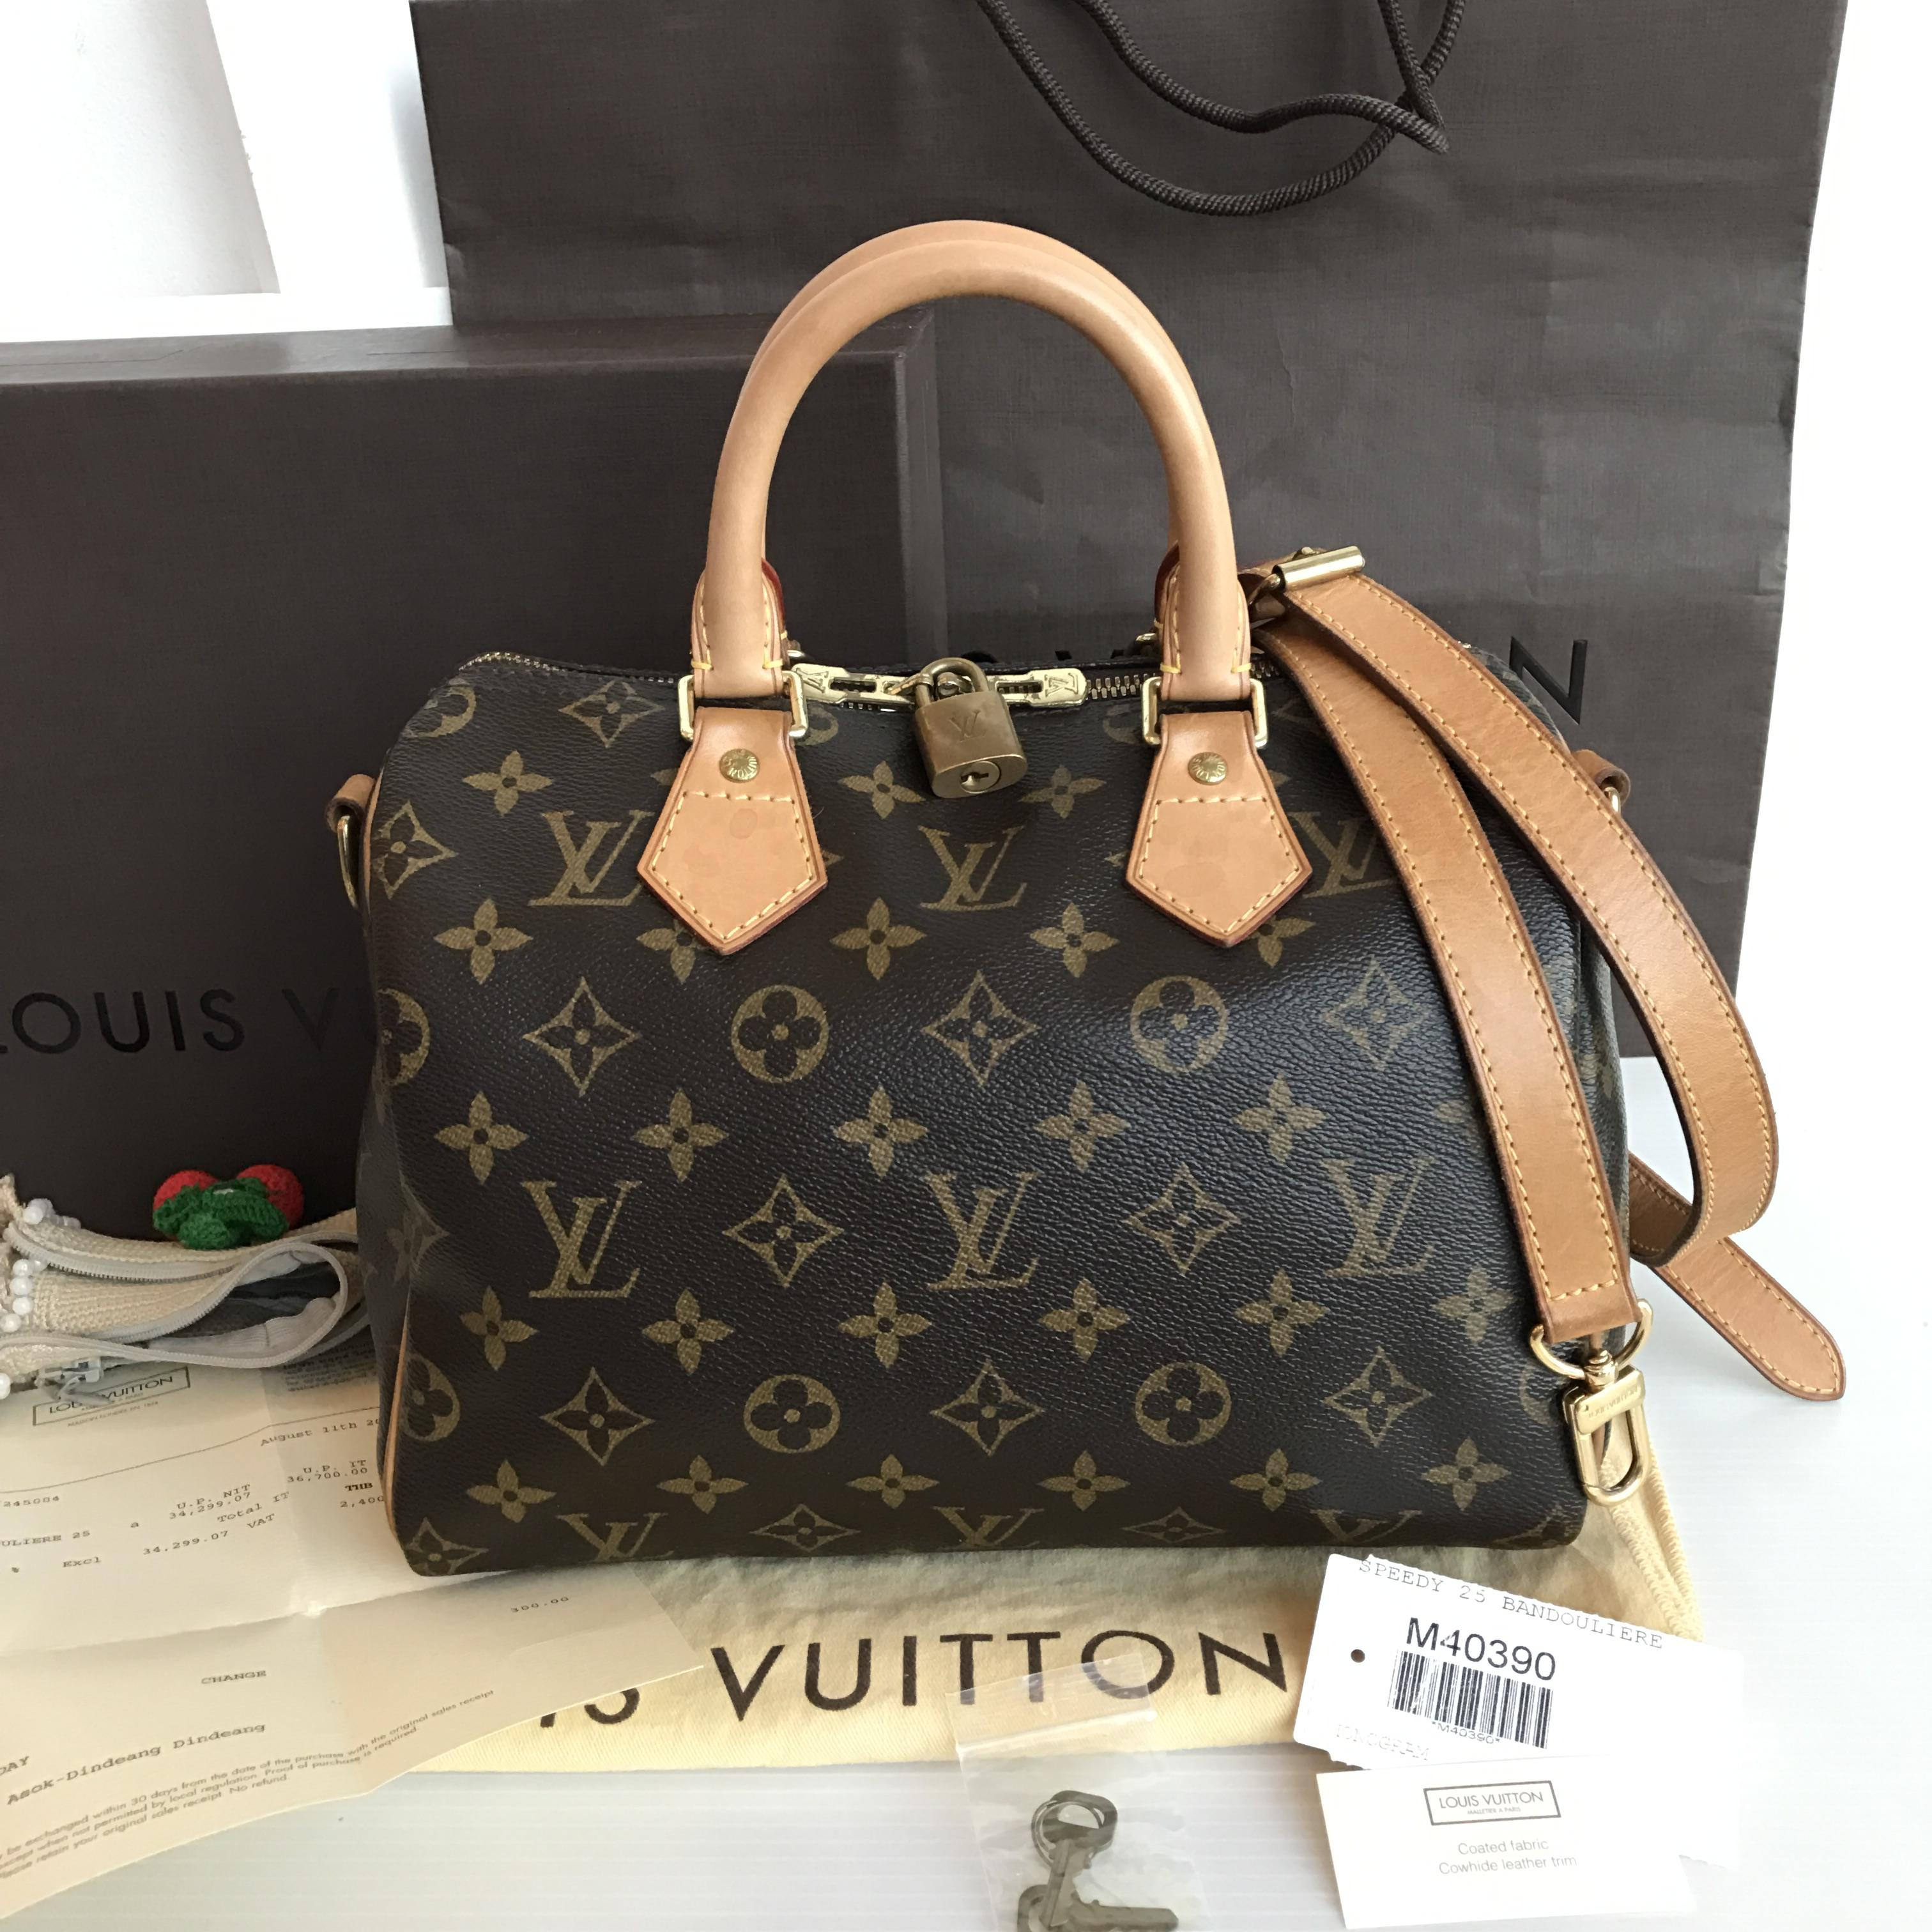 (SOLD OUT)LOUISVUITTON monogram speedy bandouliere 25